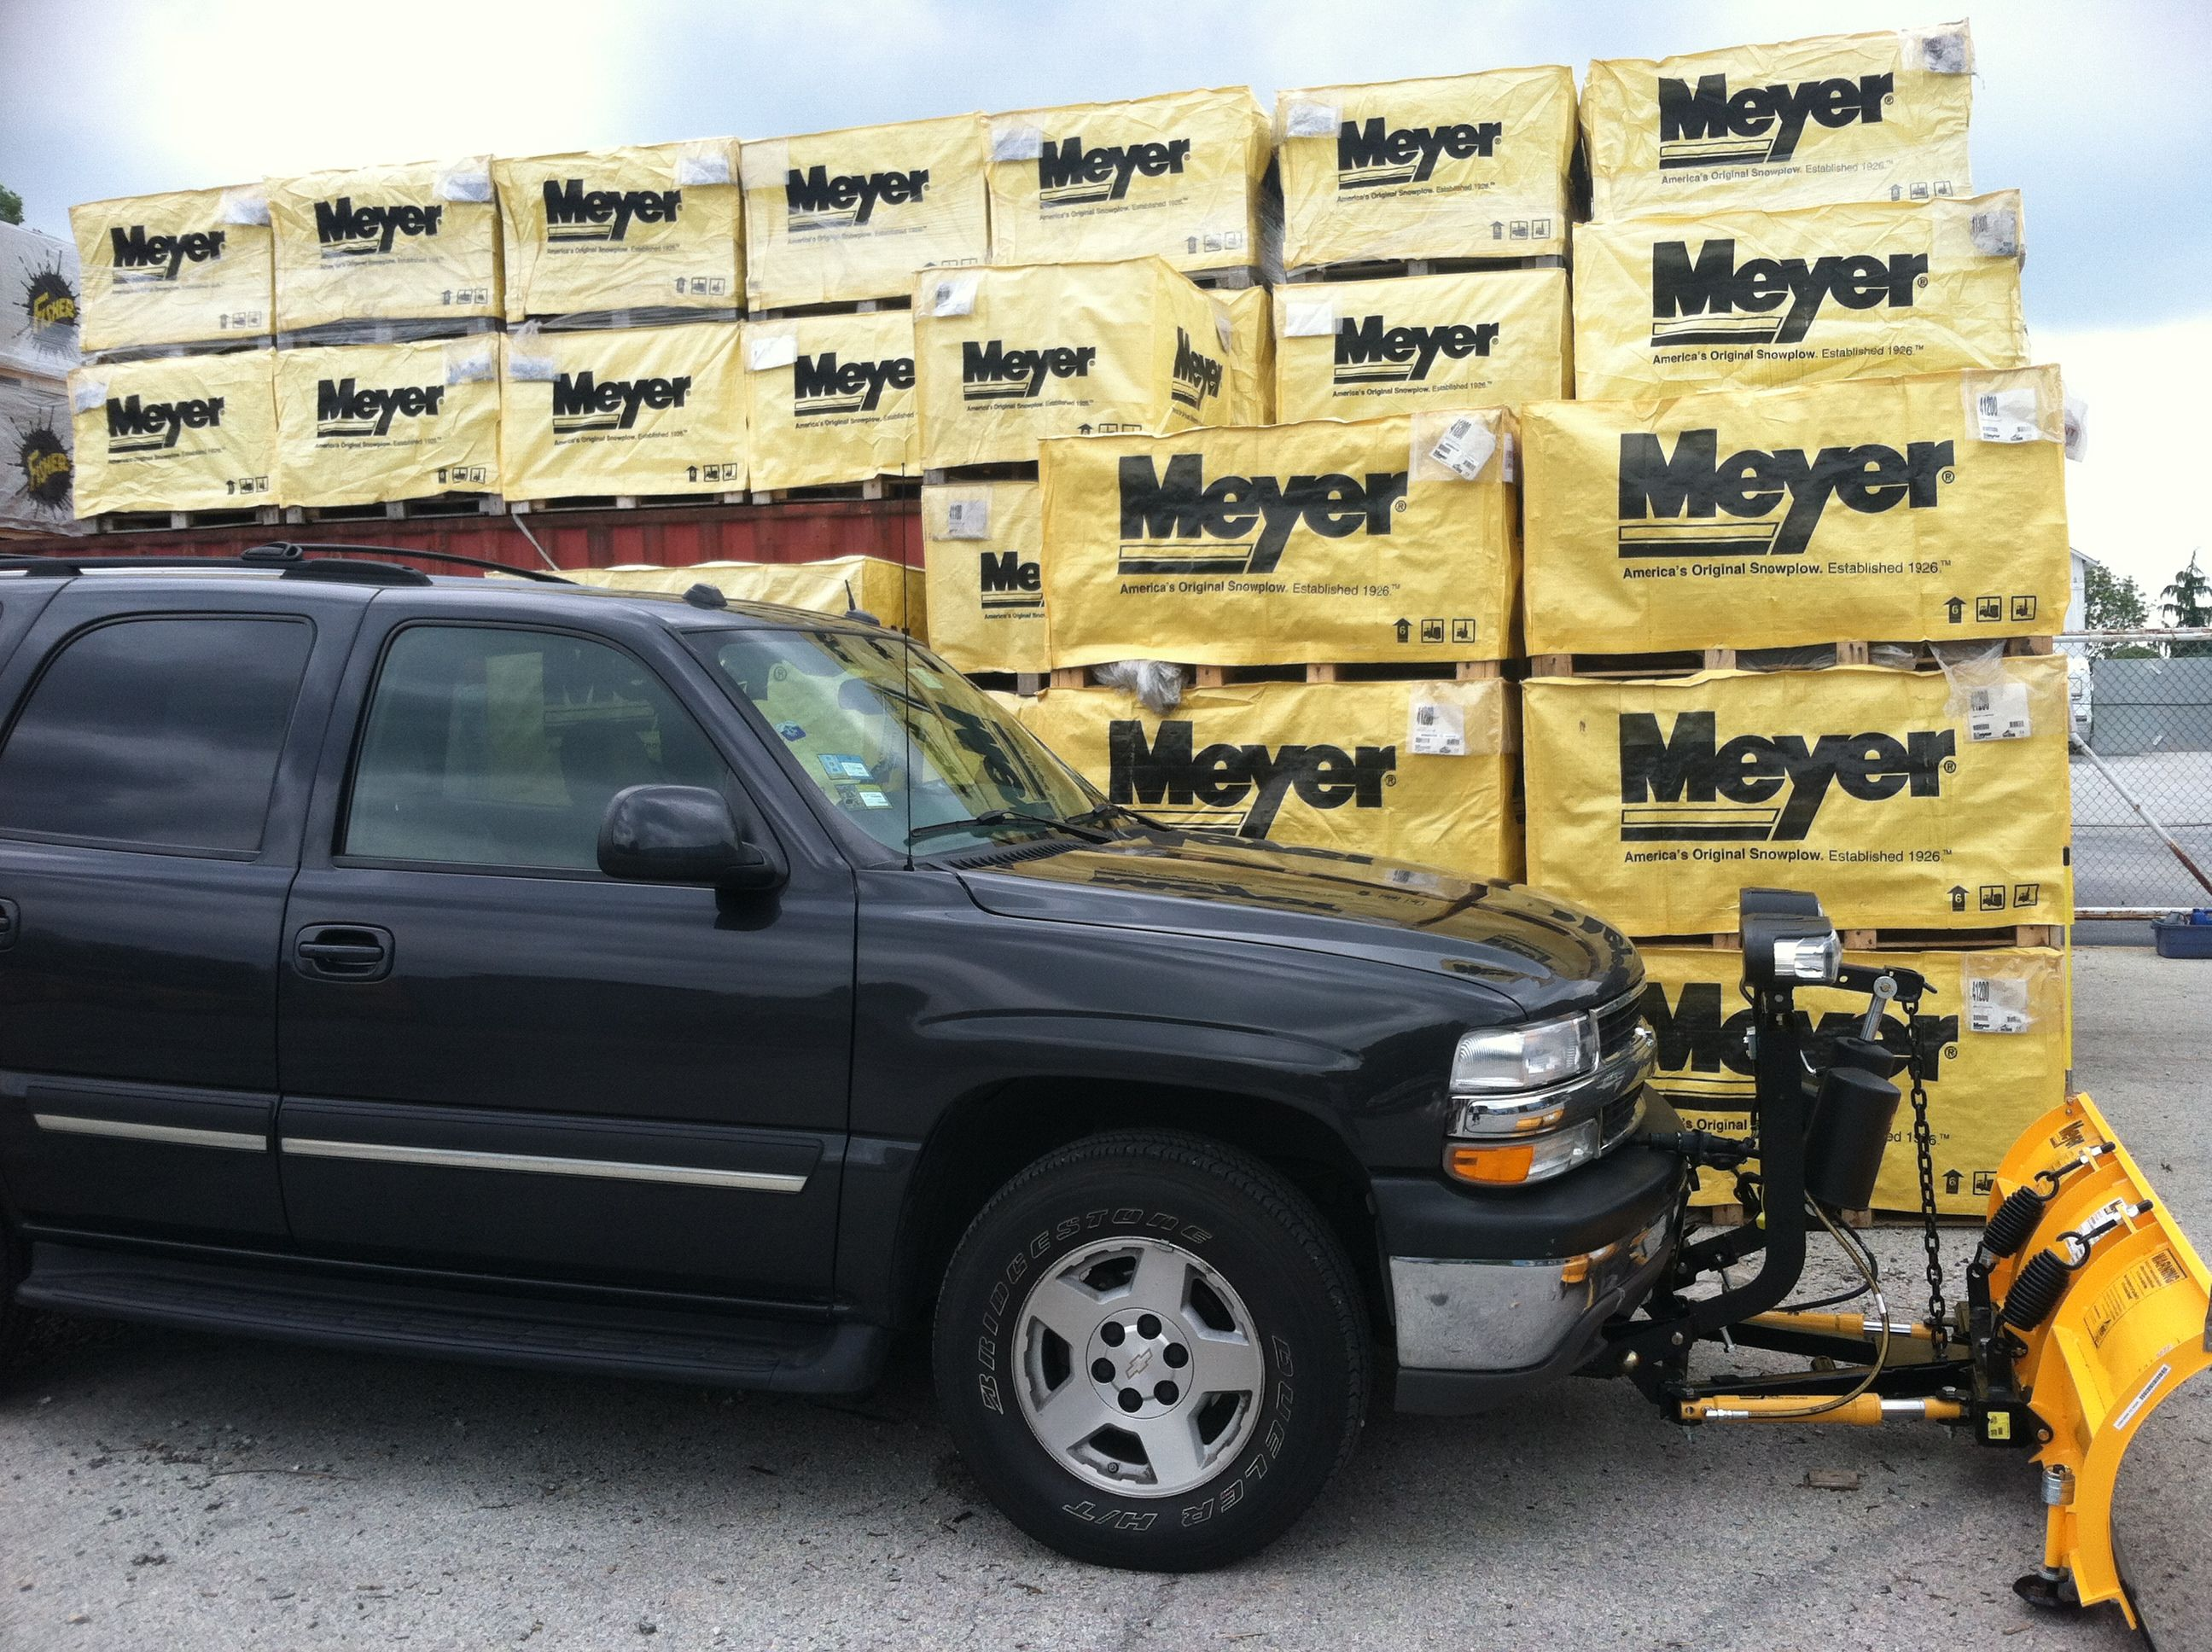 Meyer installed on chevy tahoe